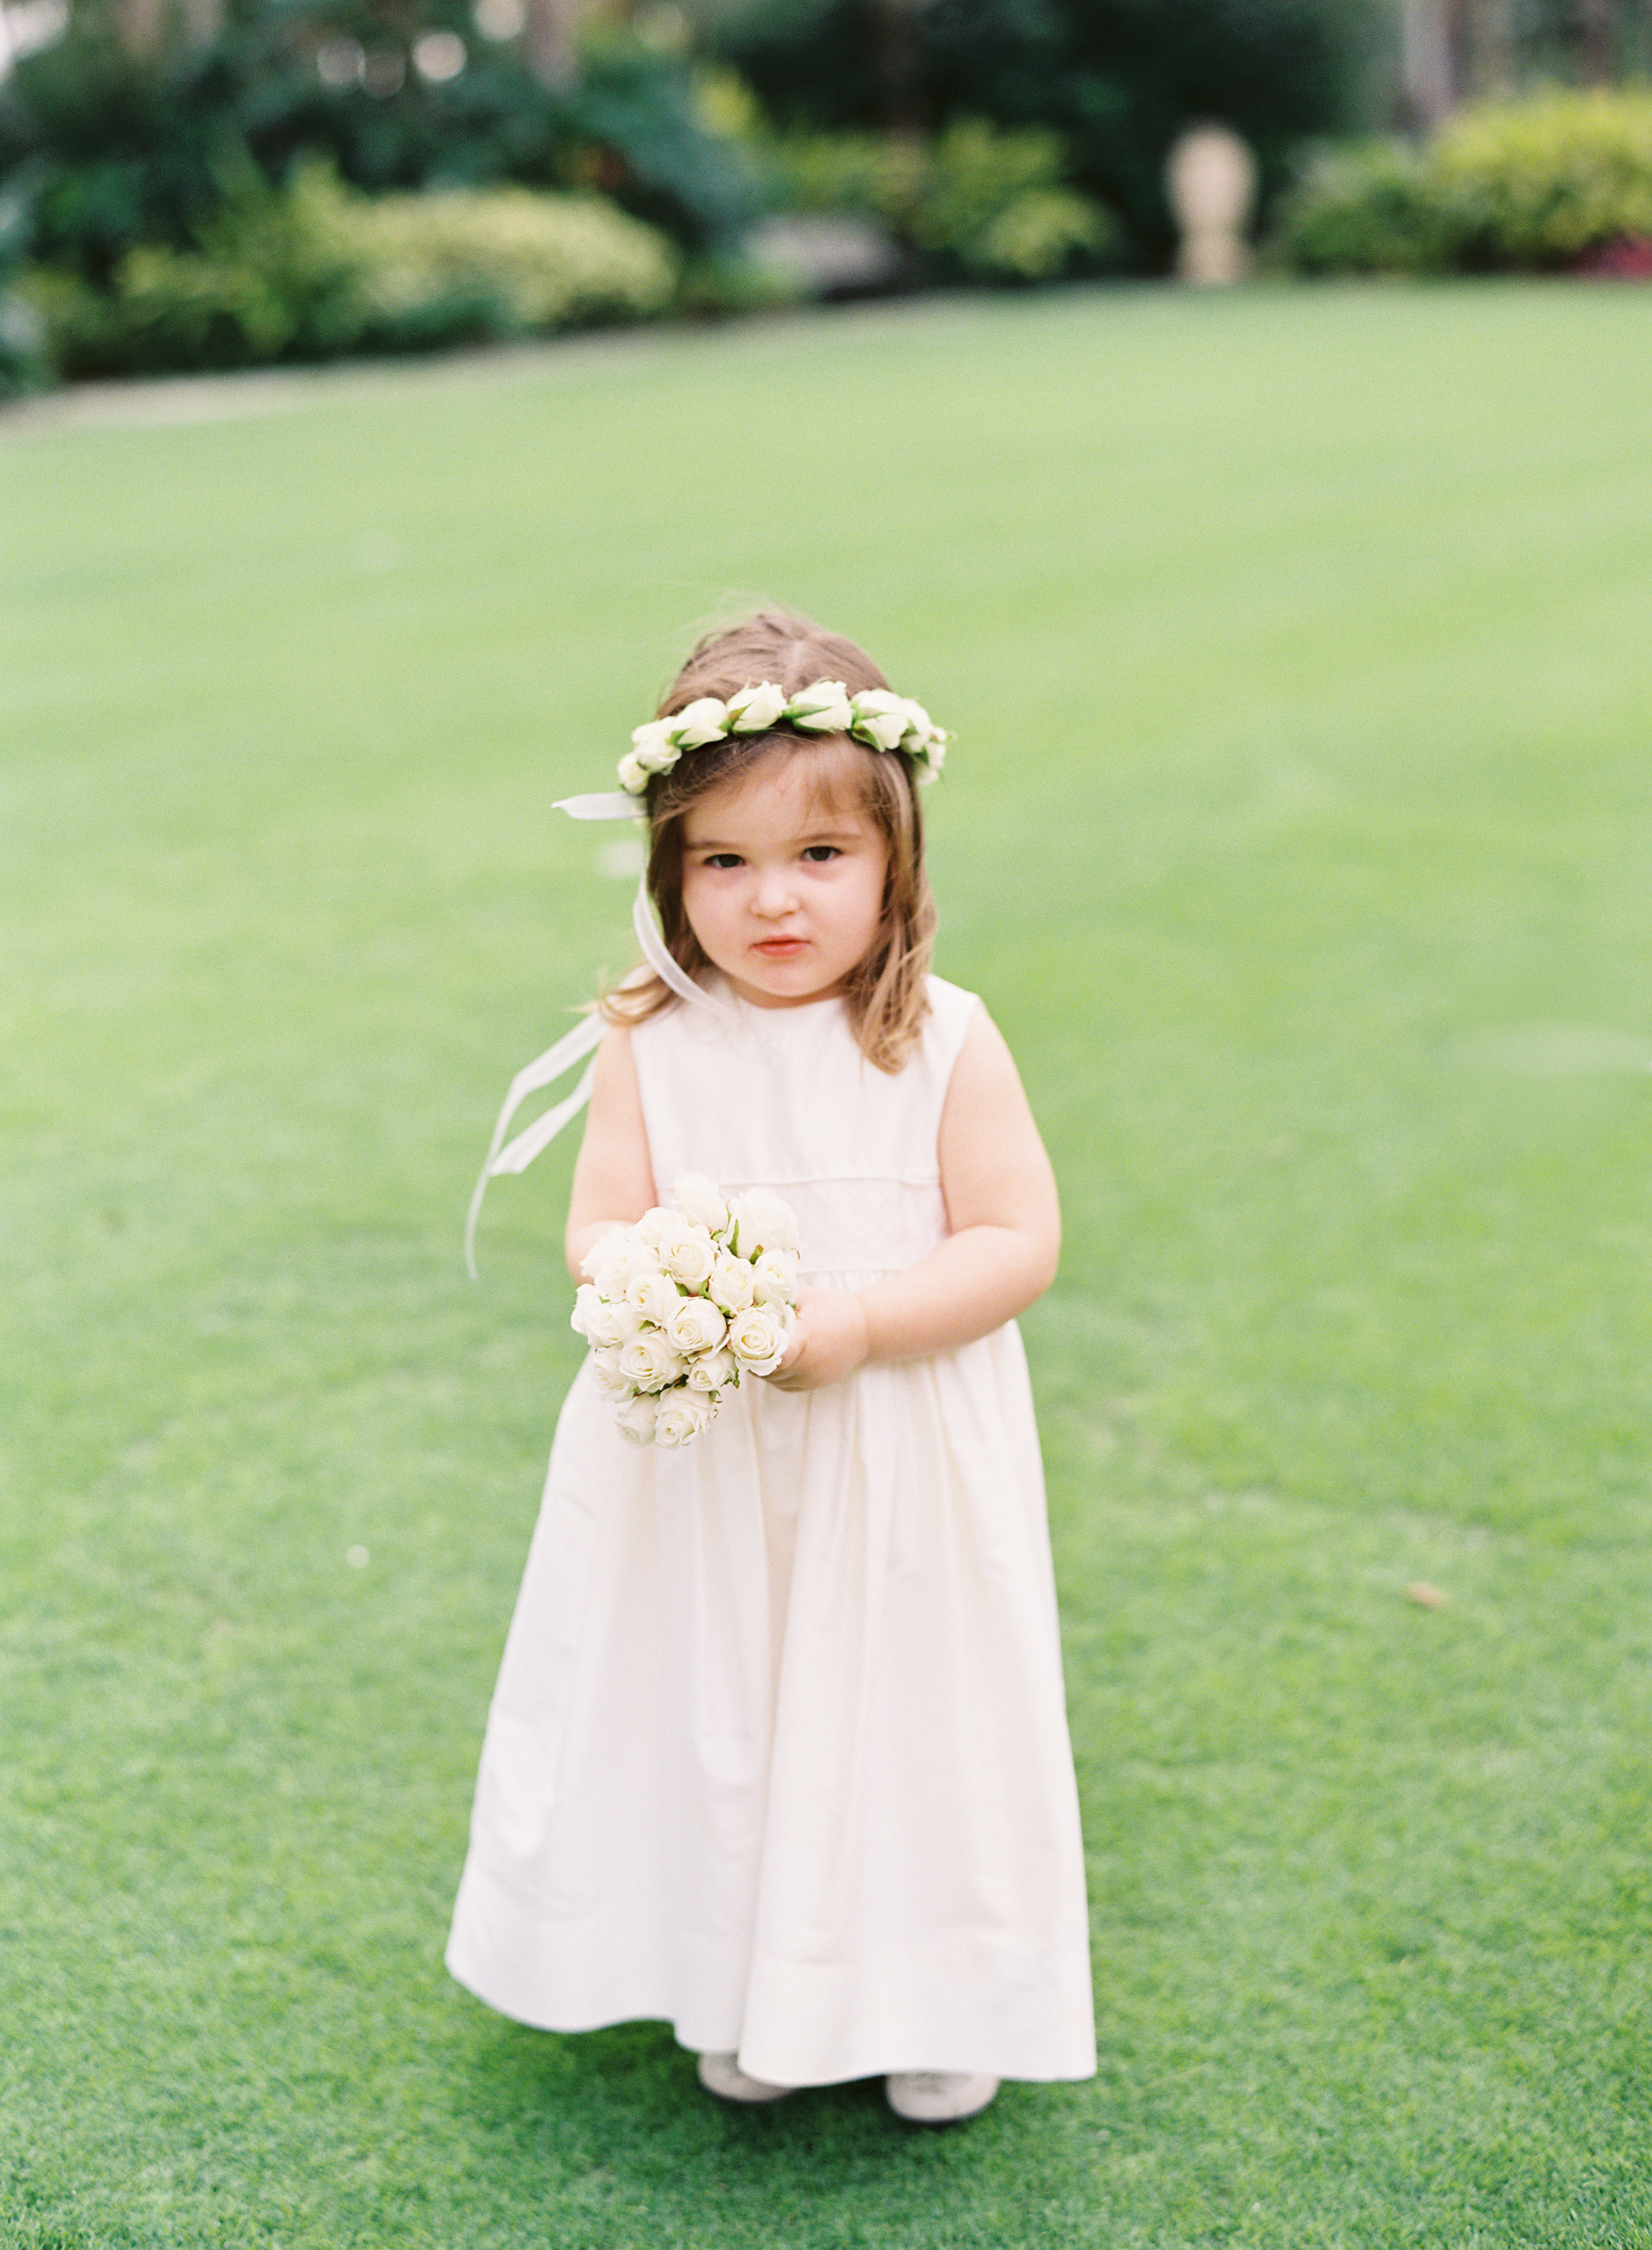 Real Weddings, Classic, Southern Real Weddings, Flower girl, Elegant, Florida, Southern weddings, hair wreath, florida real weddings, florida weddings